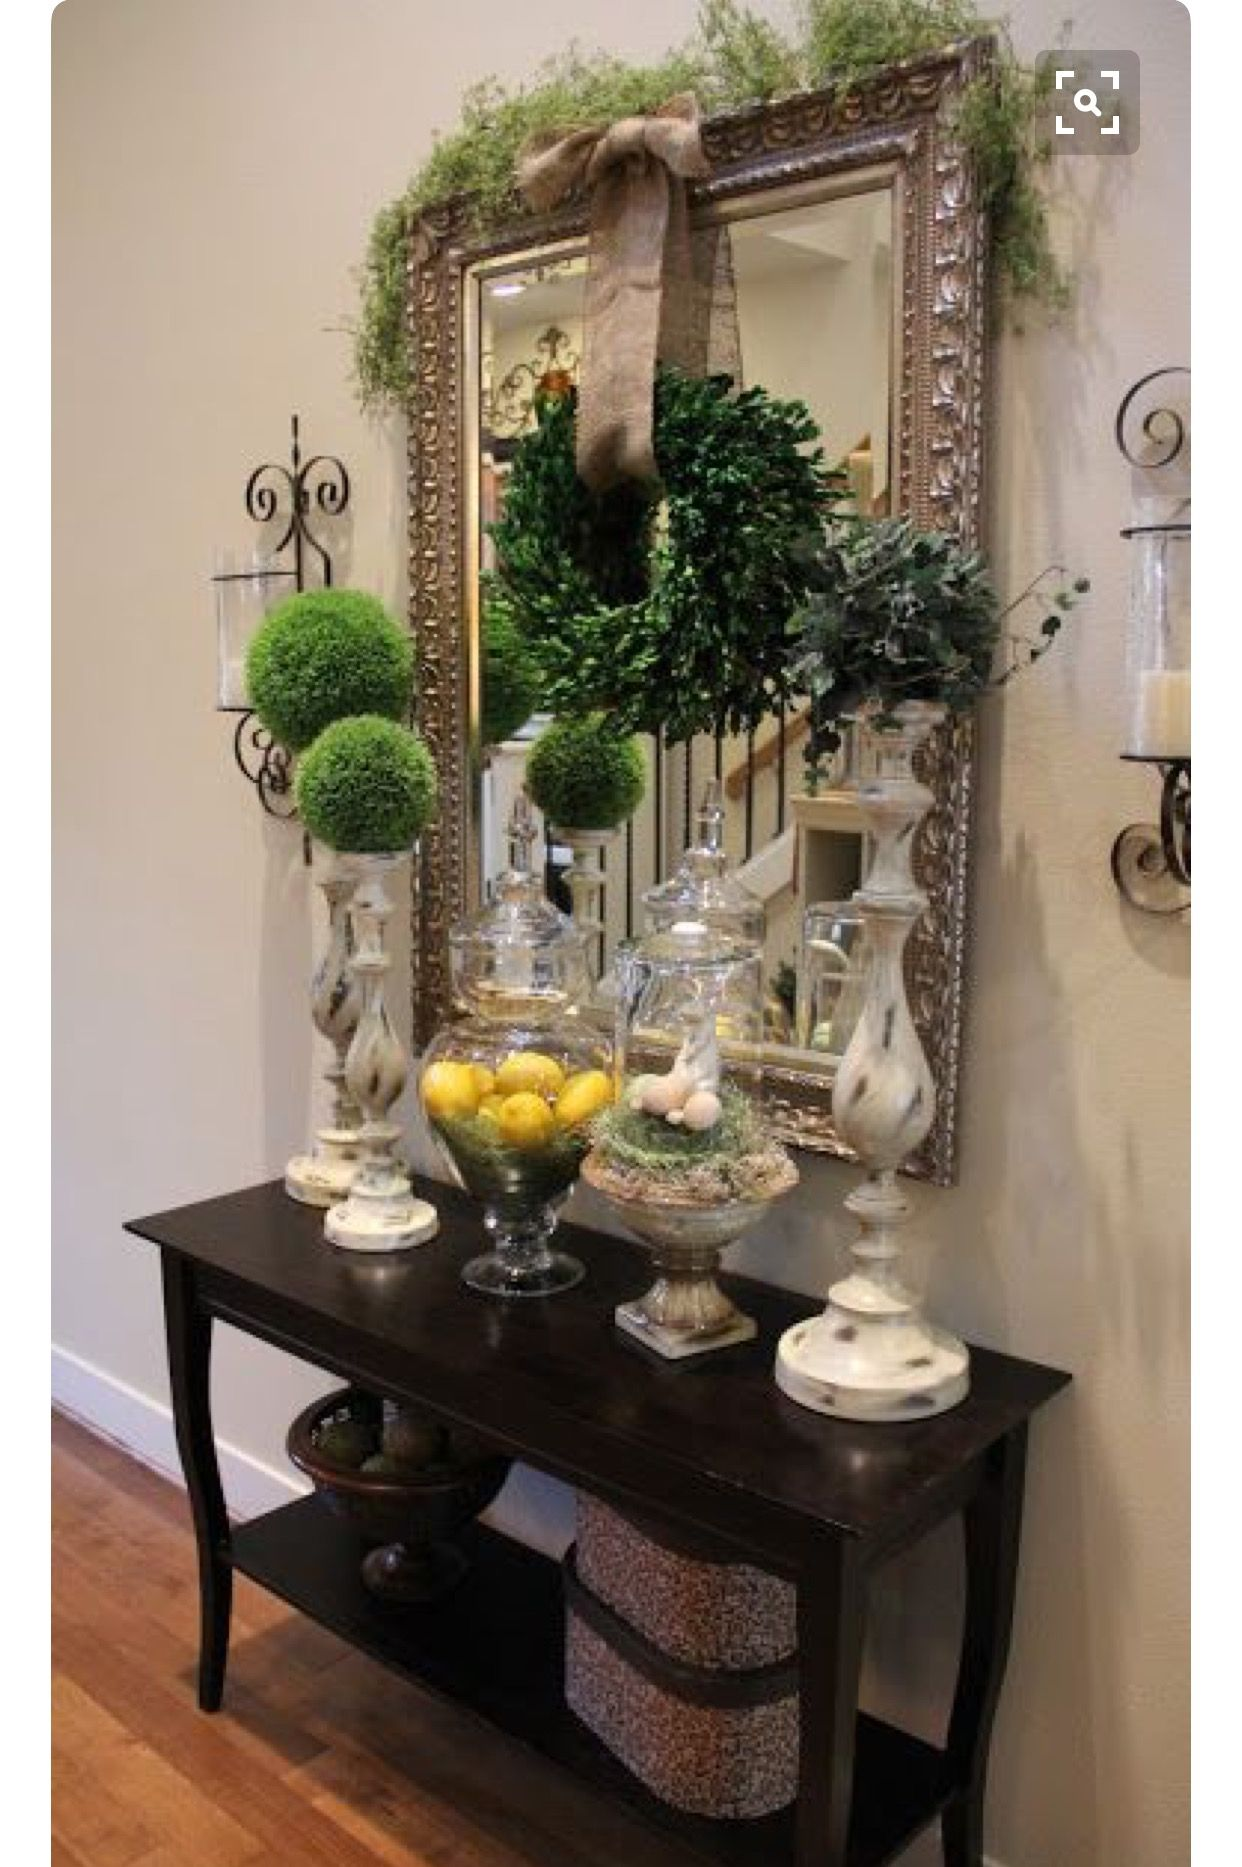 furnitur tables onto girl my foyer home dfde entryway or diy added entry trgn country table decor on decorating